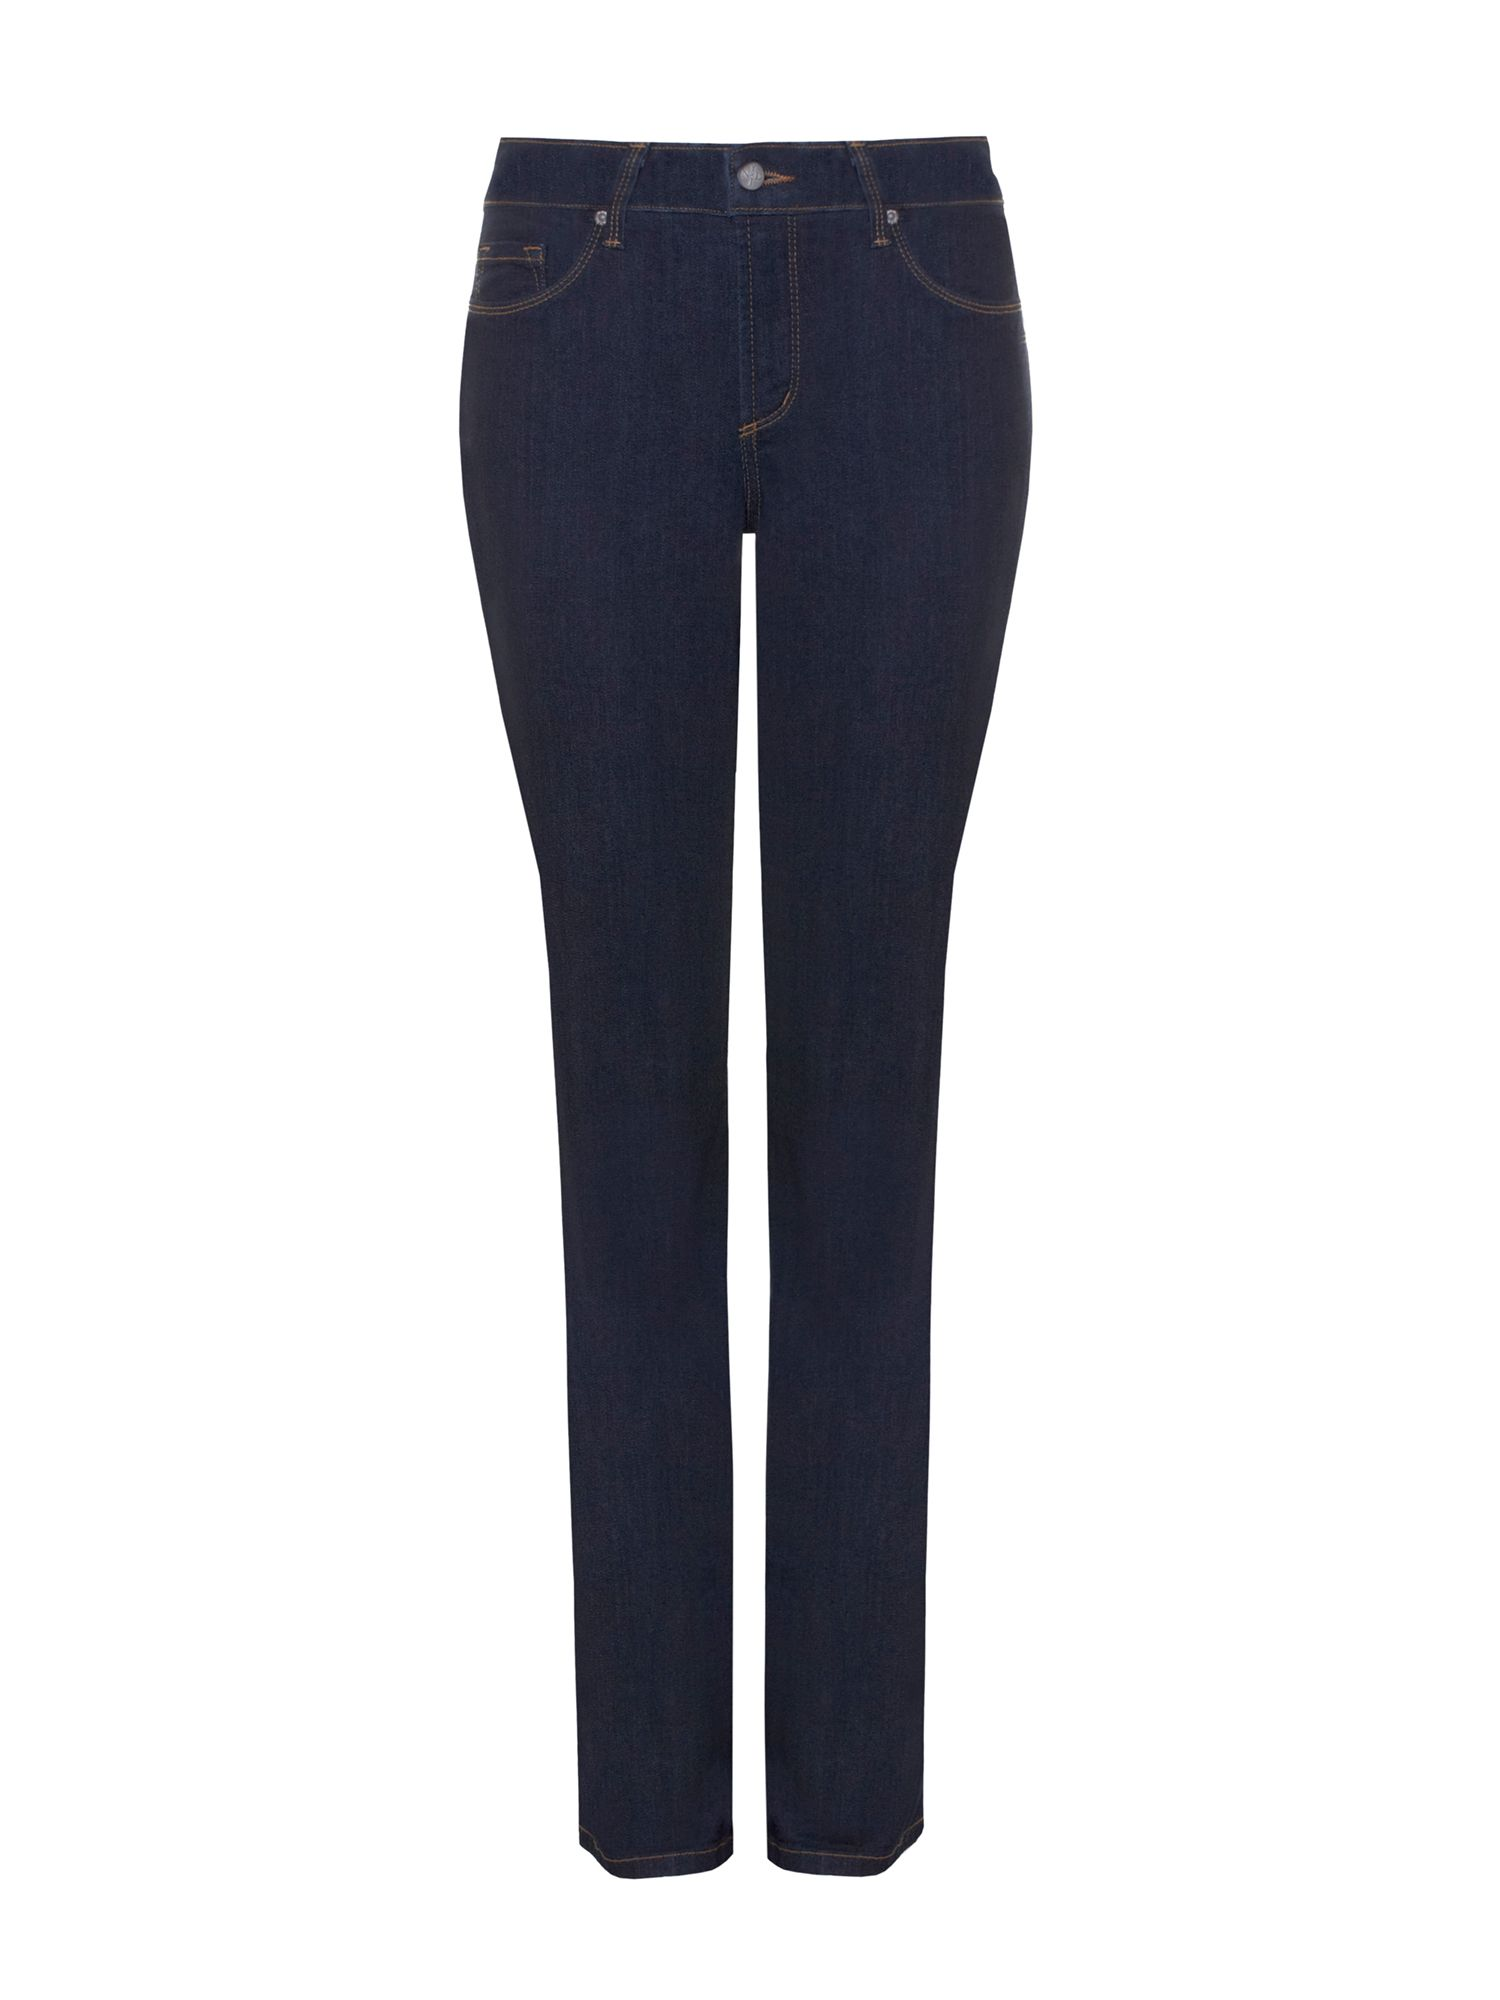 NYDJ Straight In Blue Premium Denim Petite Denim